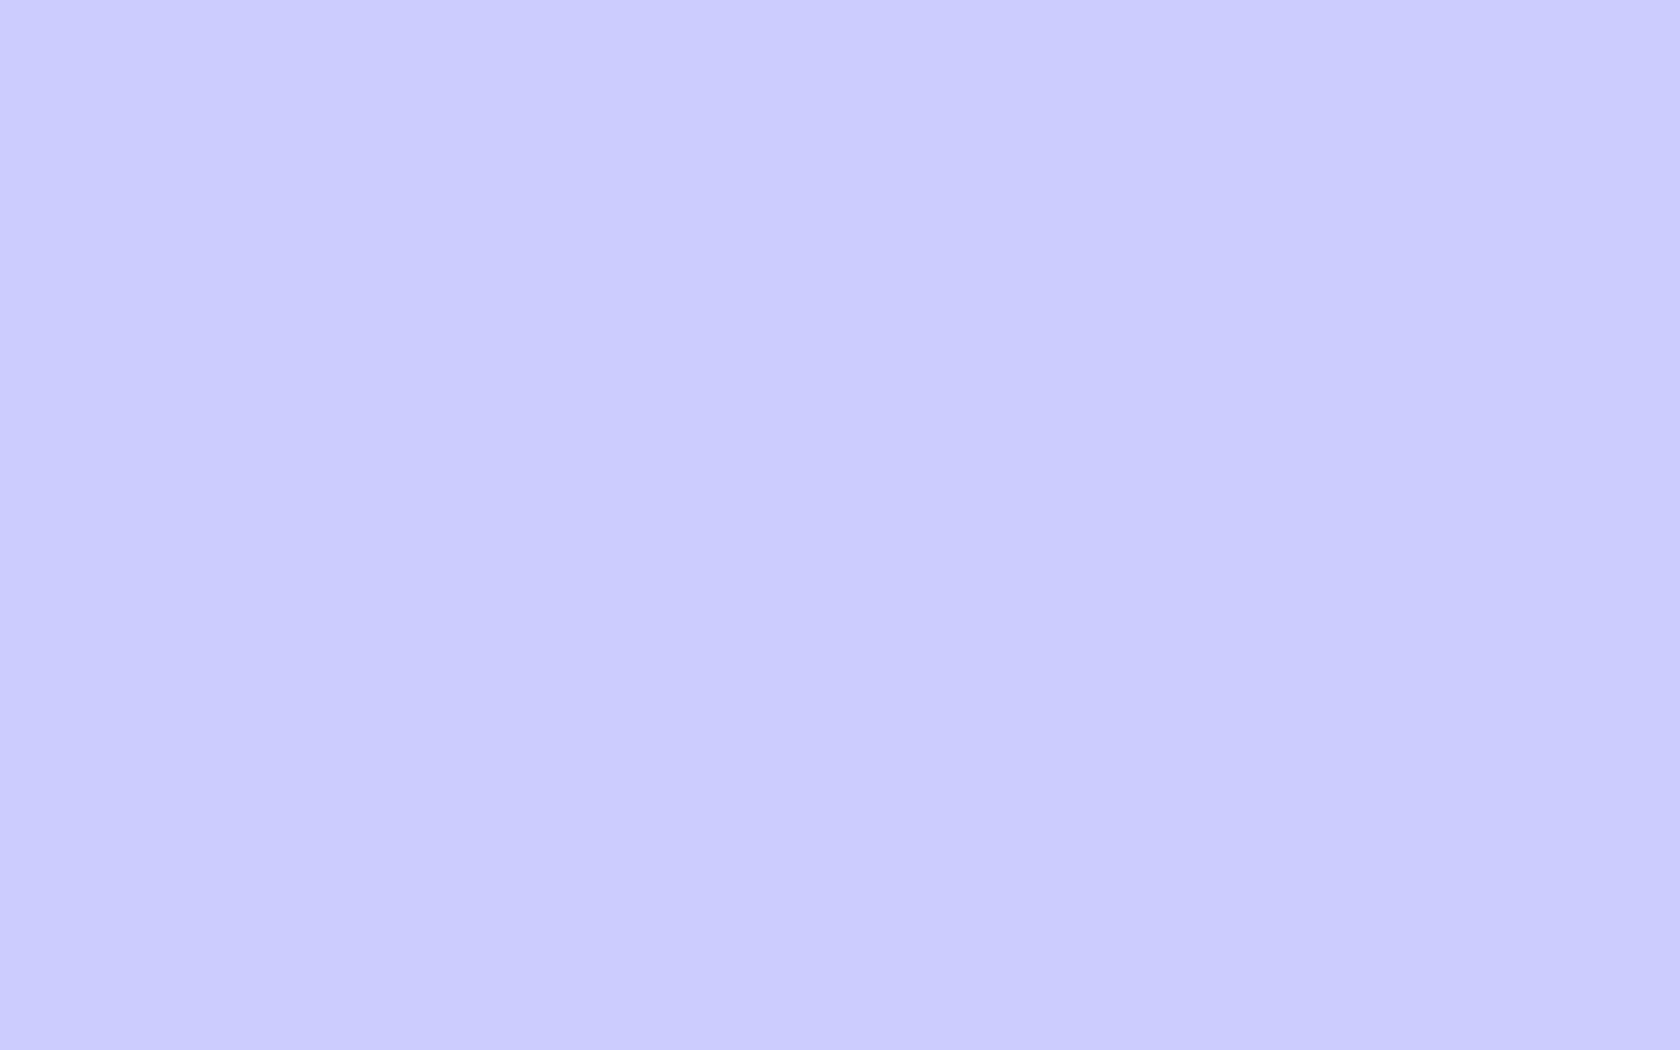 1680x1050 Periwinkle Solid Color Background